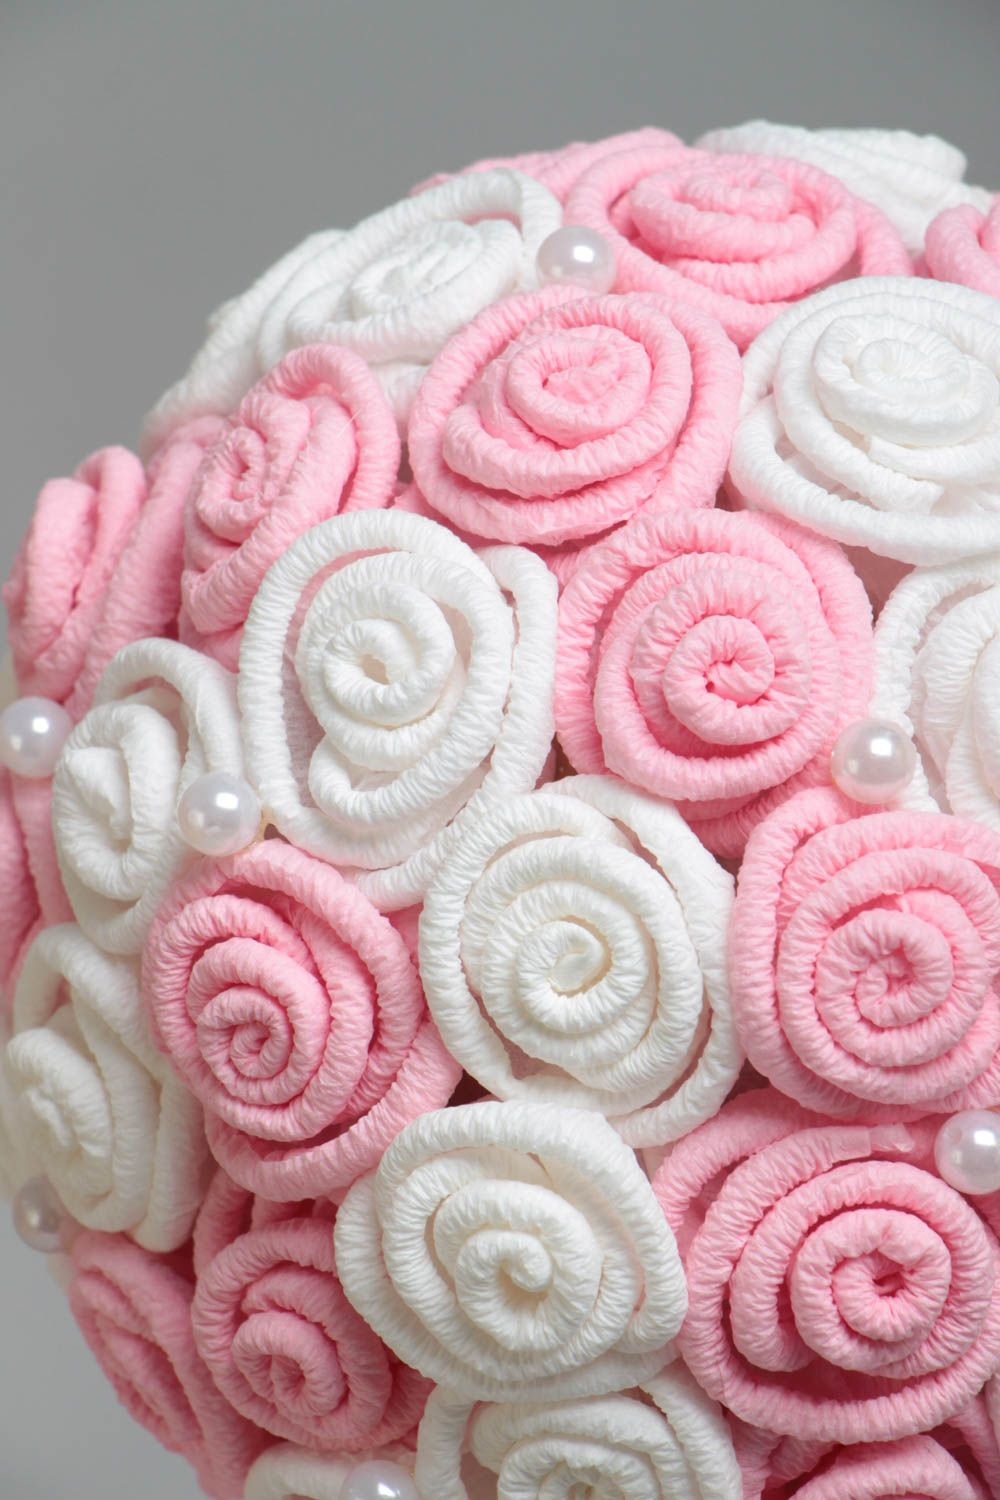 Handmade decorative topiary tree with white and pink paper roses with beads photo 3